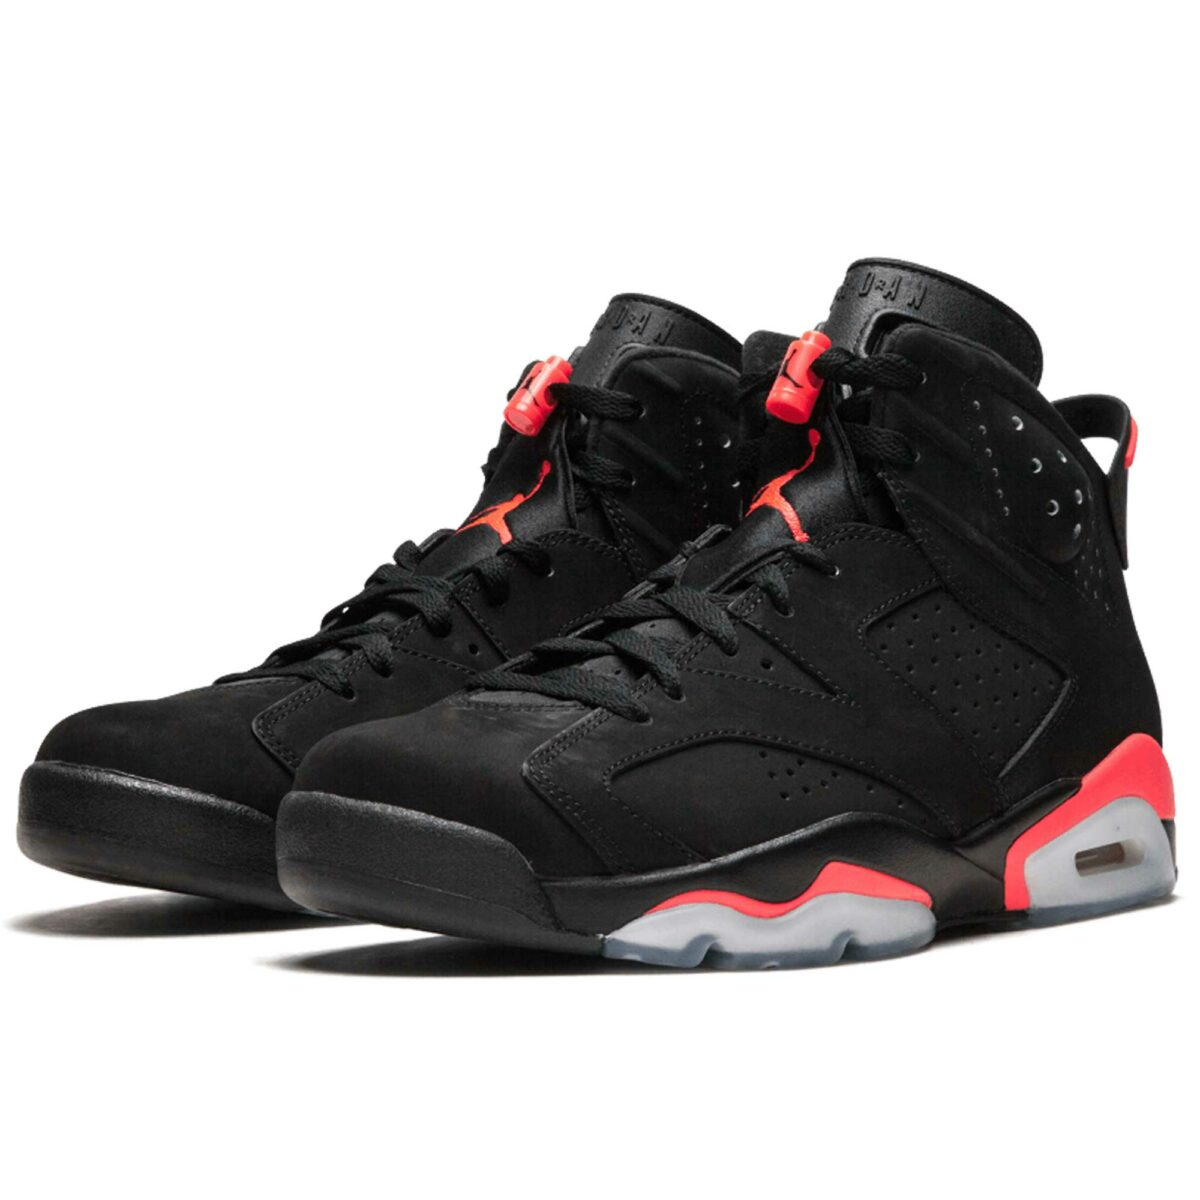 nike air jordan 6 retro black infared 384664_023 купить